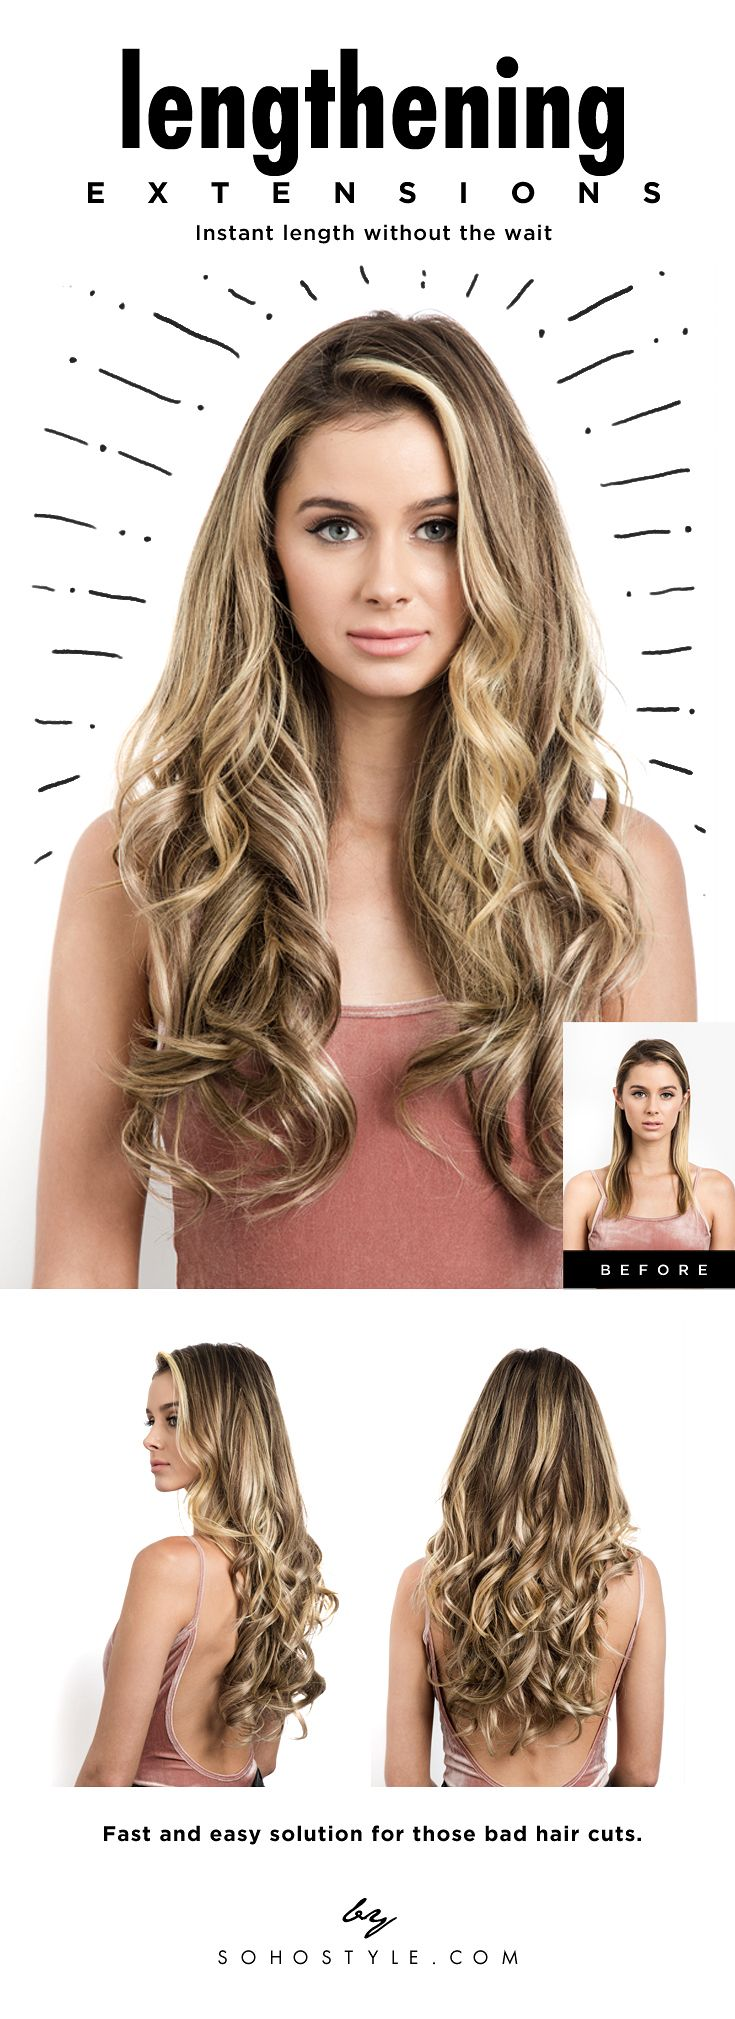 36 best soho hair extensions images on pinterest soho hair achieve the length youve always wanted check out our remy human hair lengthening extensions today pmusecretfo Images